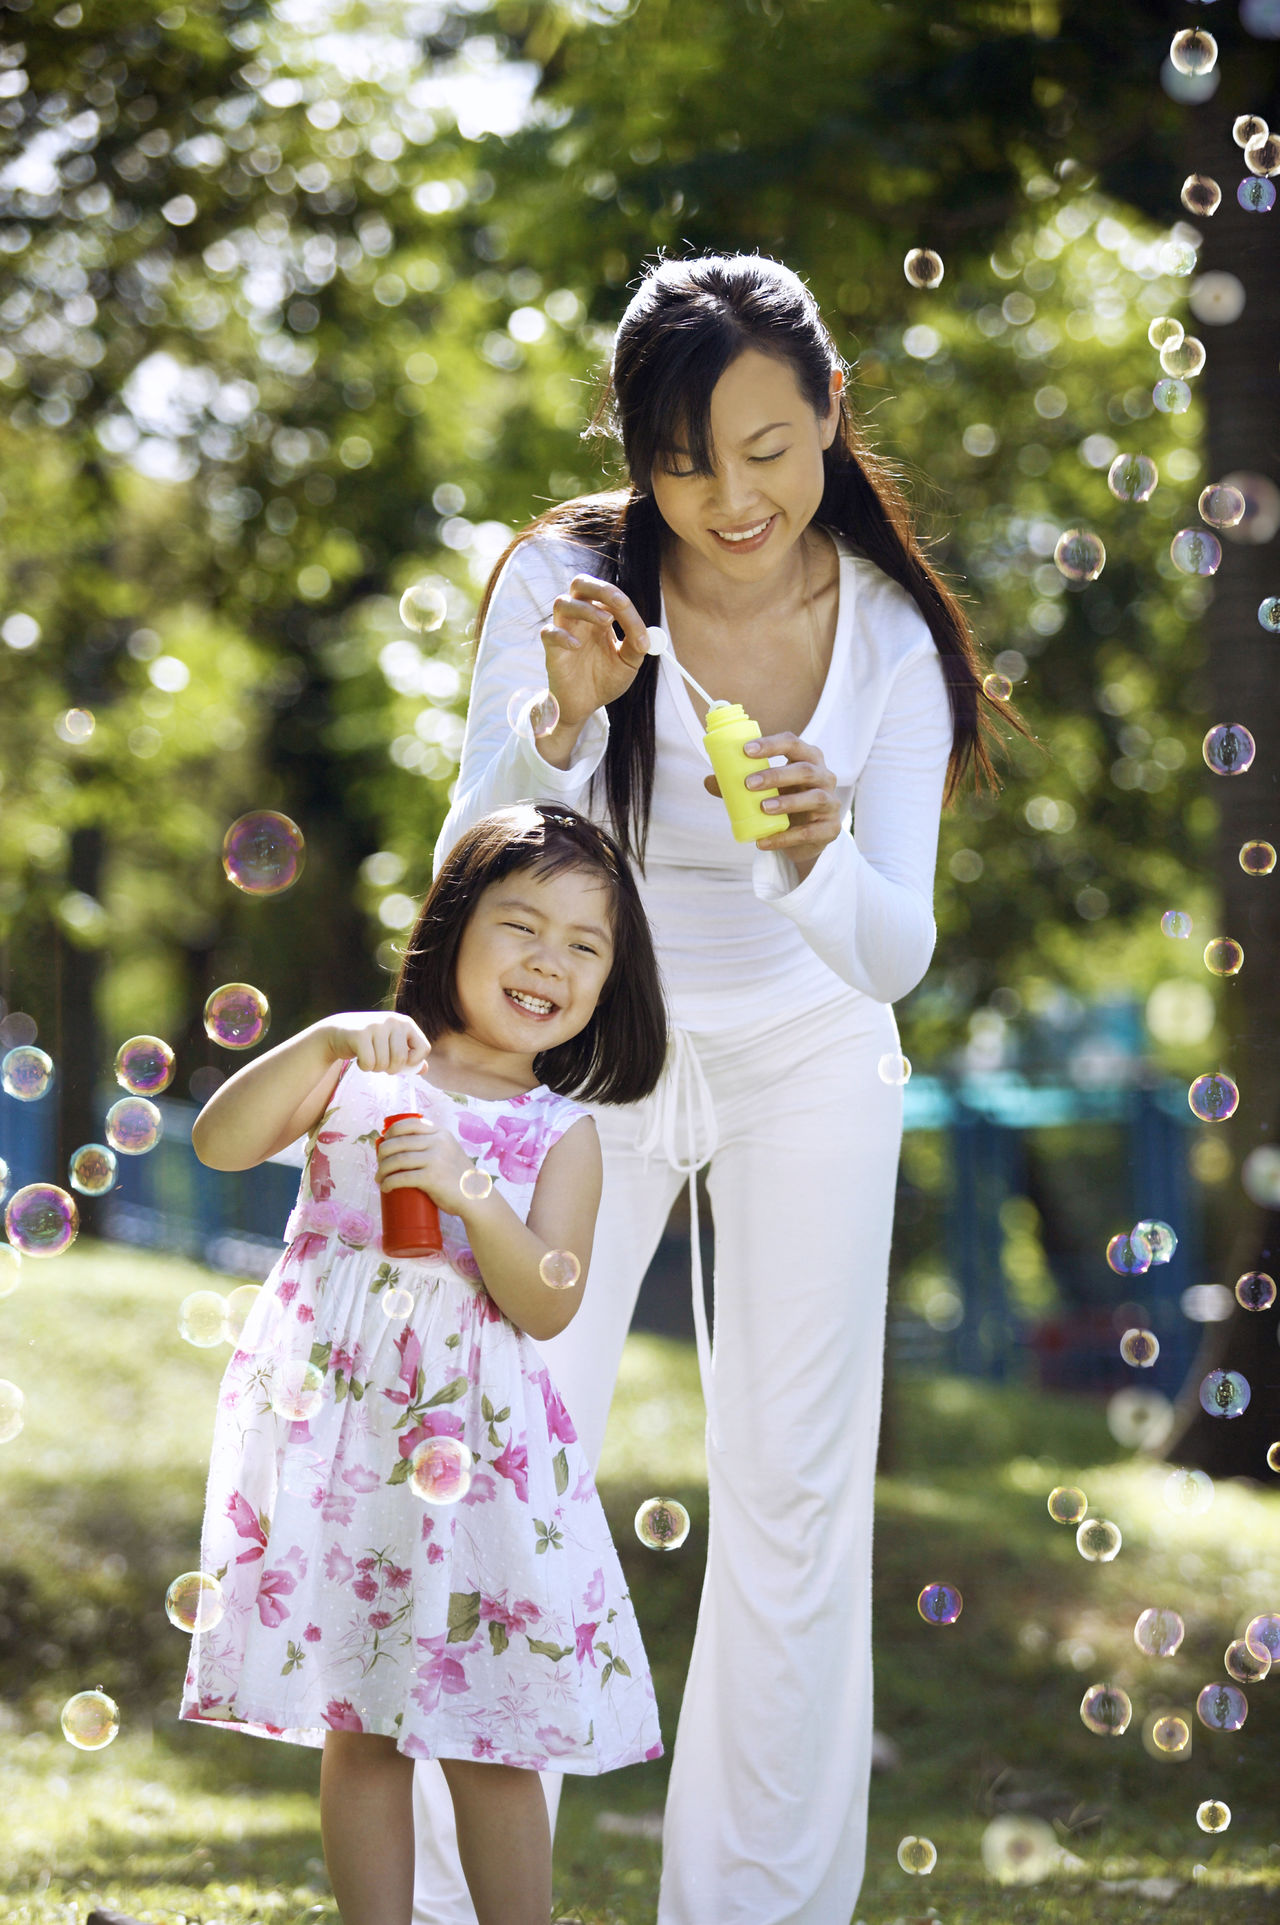 mother and daughter blowing bubbles in the park Bubble Bubble Wand Celebration Childhood Chinese Day Enjoy Family Fun Girls Holding Joy Leisure Activity Mother And Daughter Outdoors Park Pass The Time Pragnancy Recreation  Smiling Togetherness Tree Two People